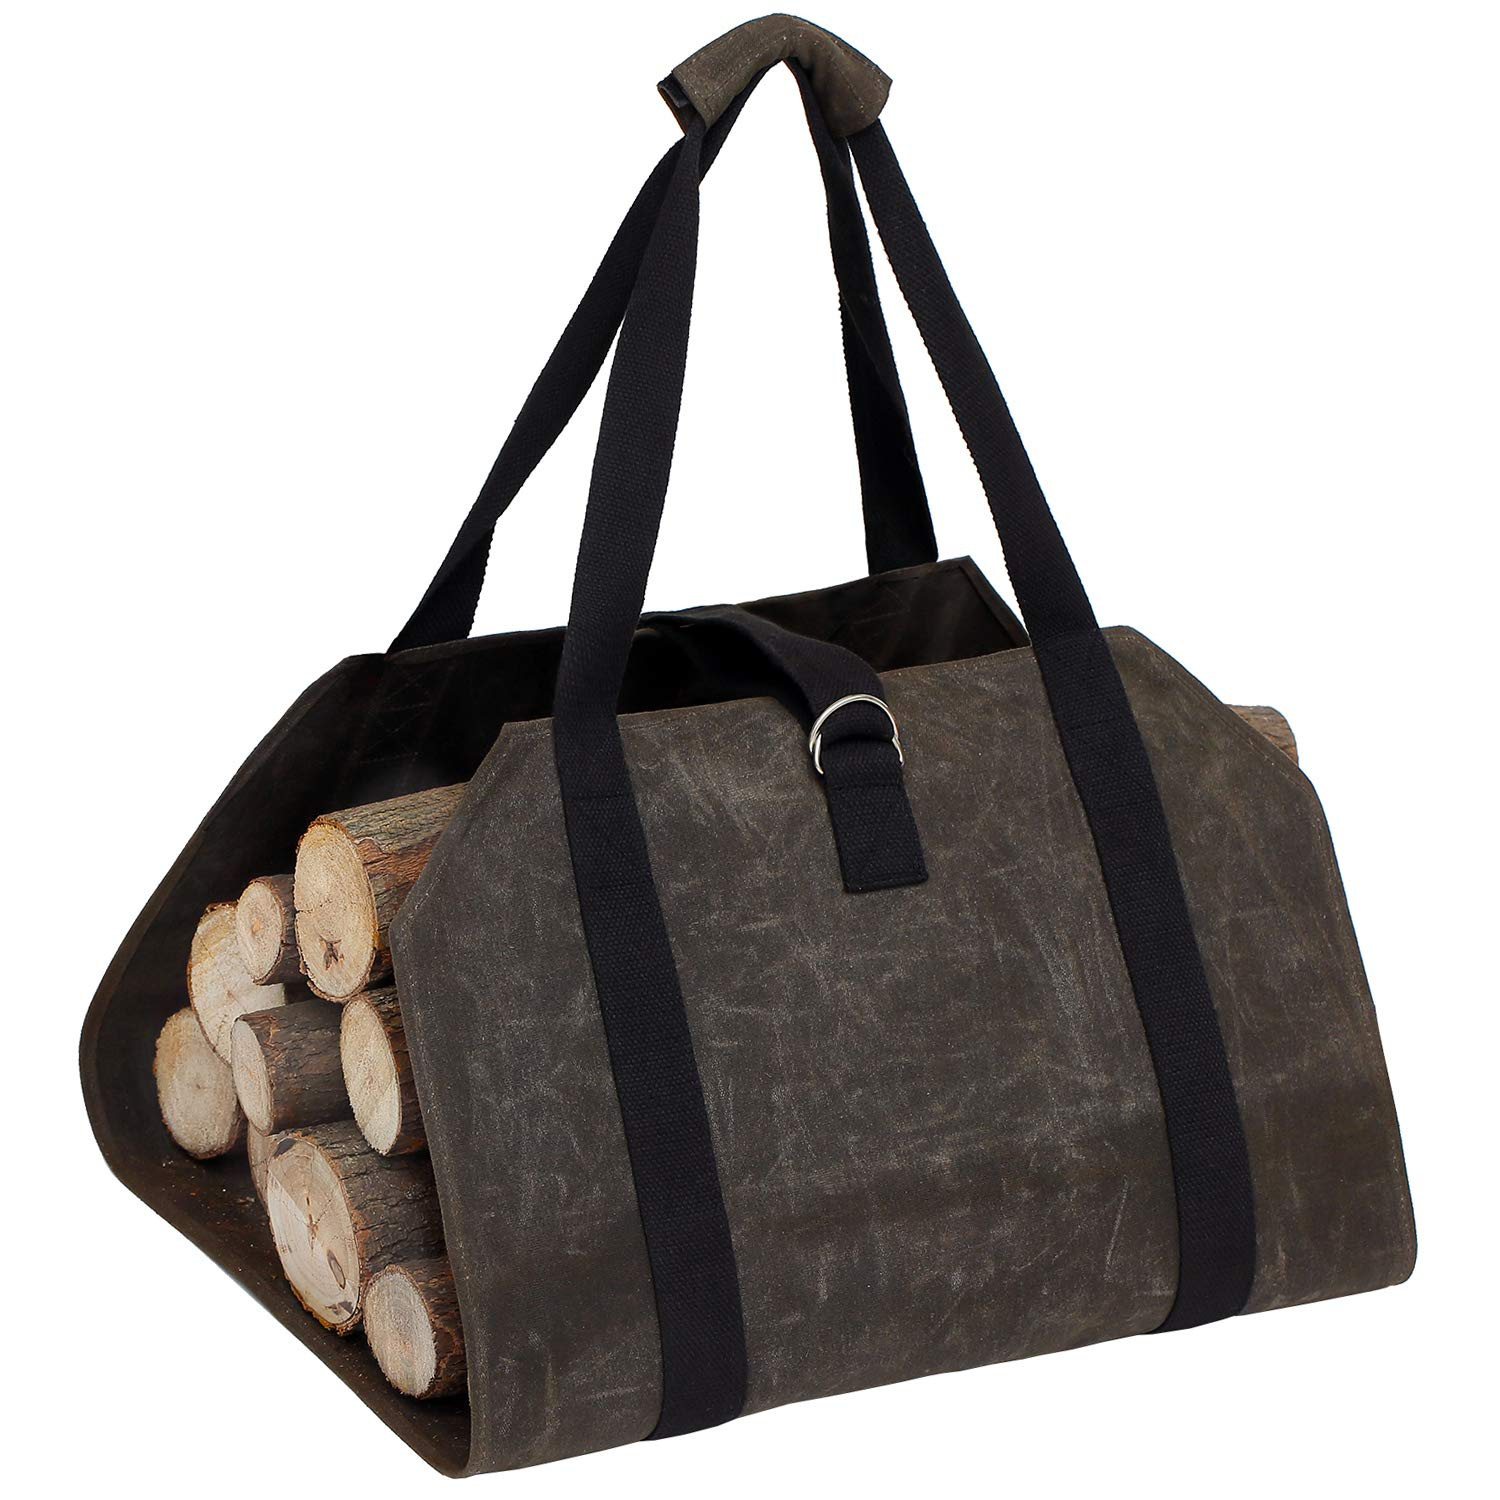 OWNFUN Waxed Canvas Firewood Log Carrier Wood Carrying Bag for Holders Fireplace